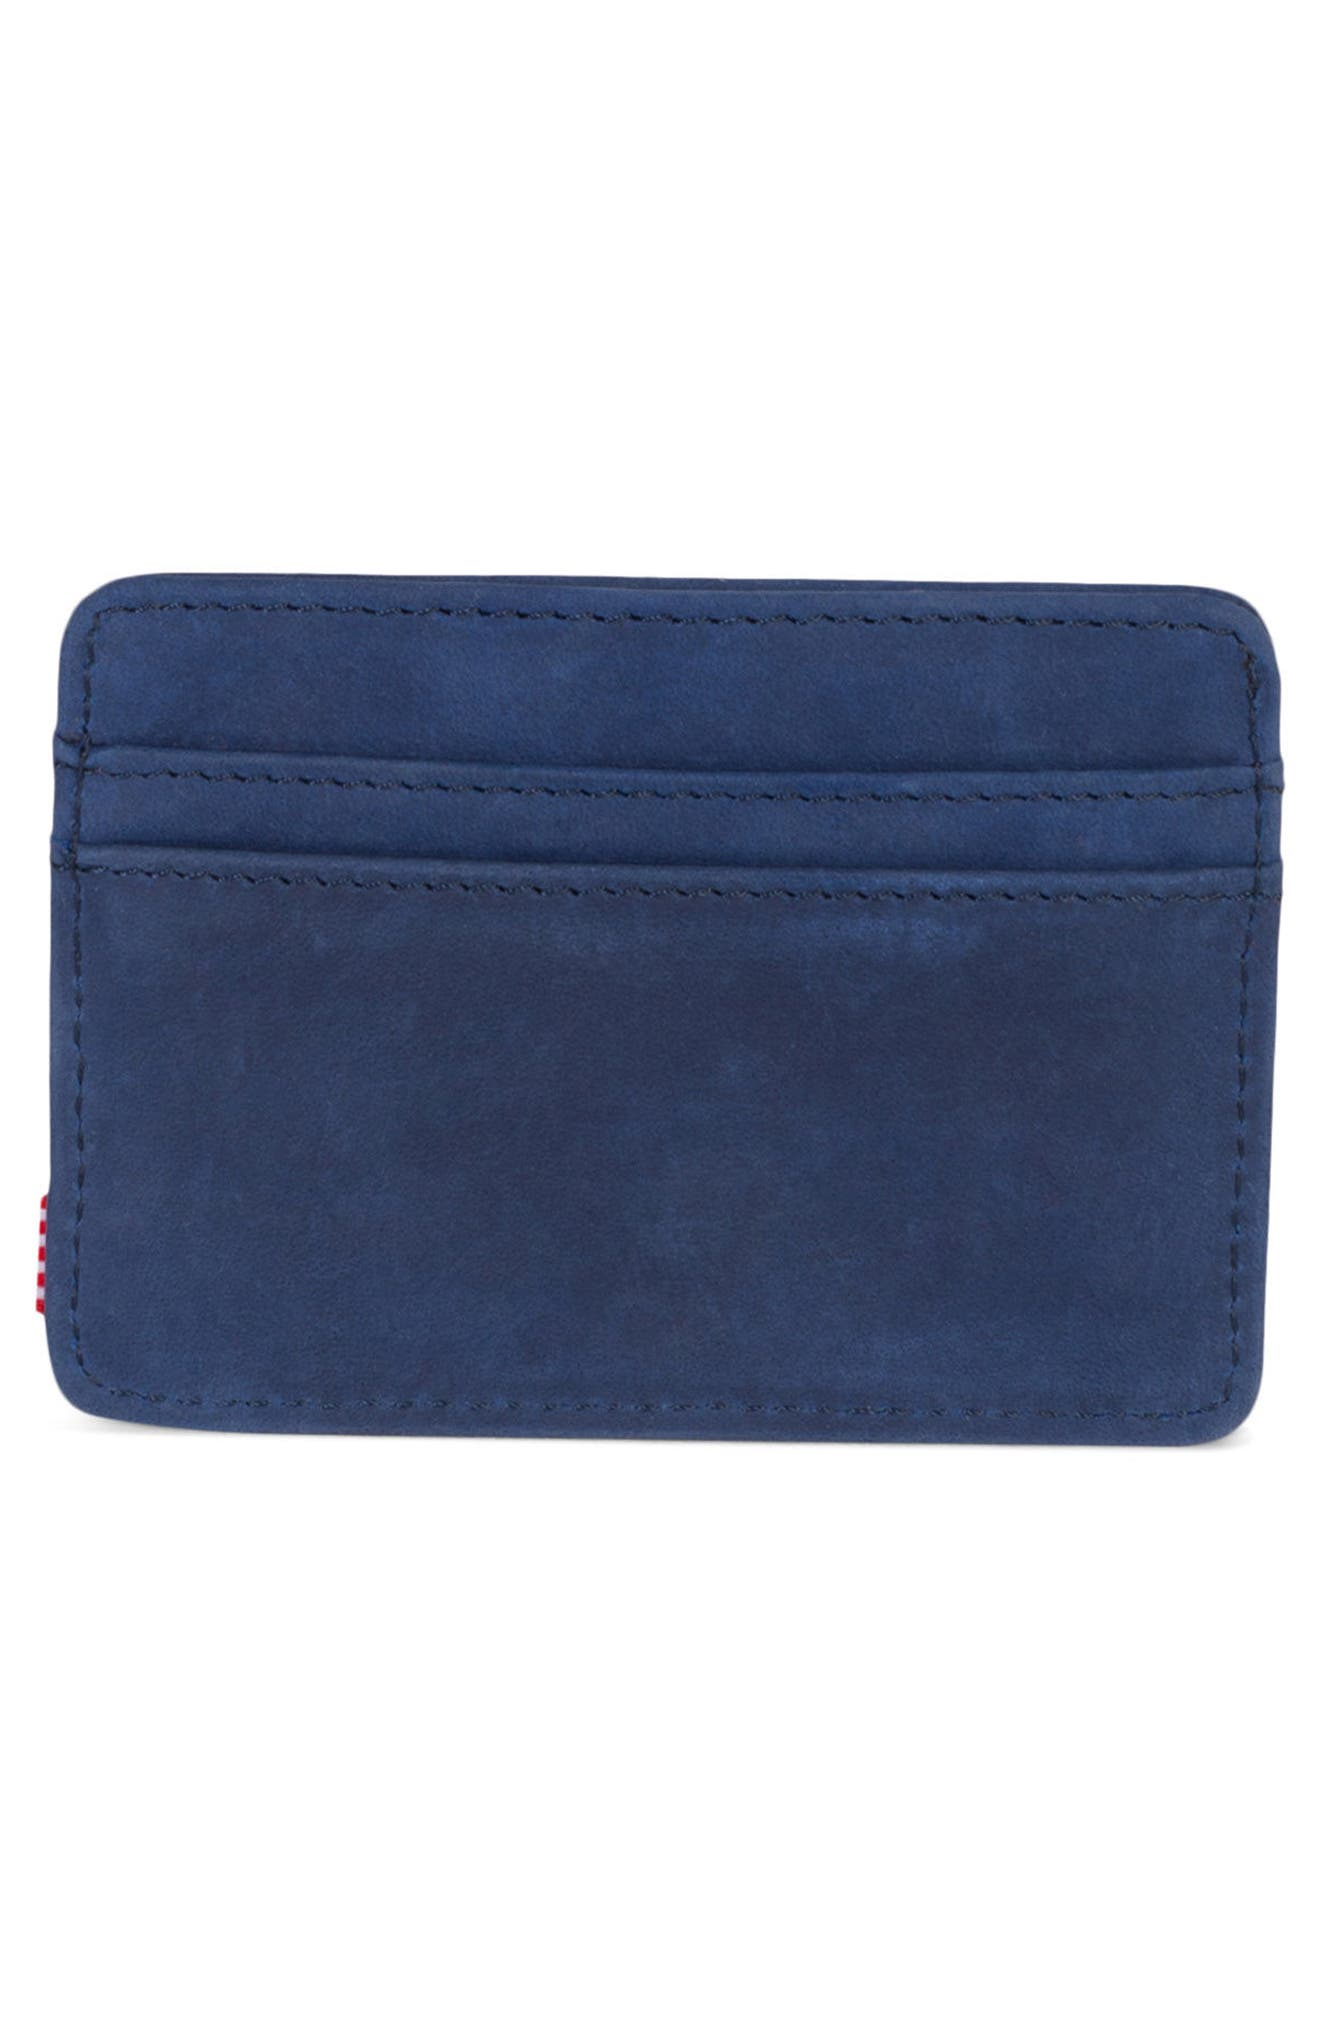 Charlie Leather Card Case,                             Alternate thumbnail 12, color,